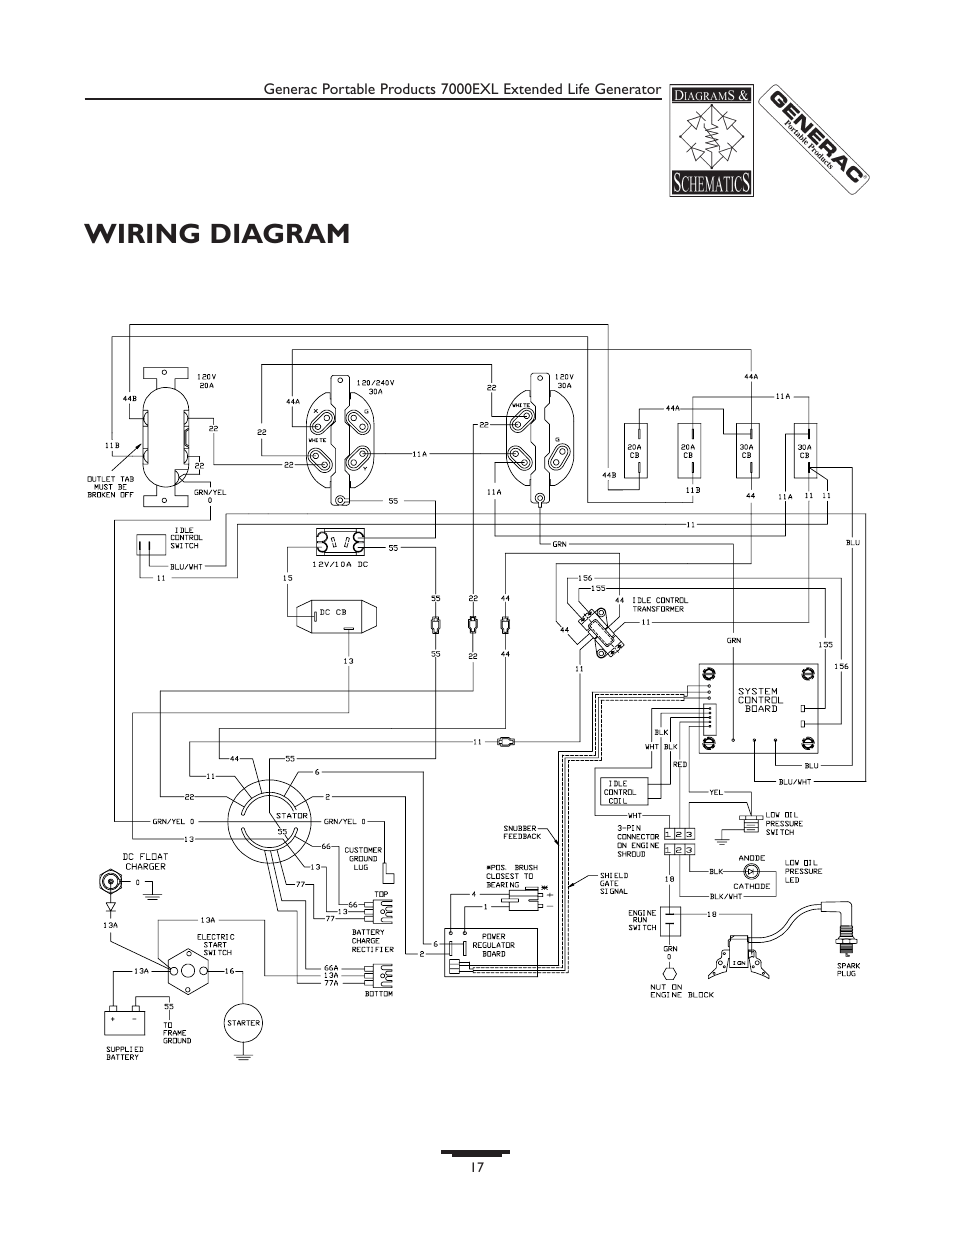 wiring diagram for generac generator